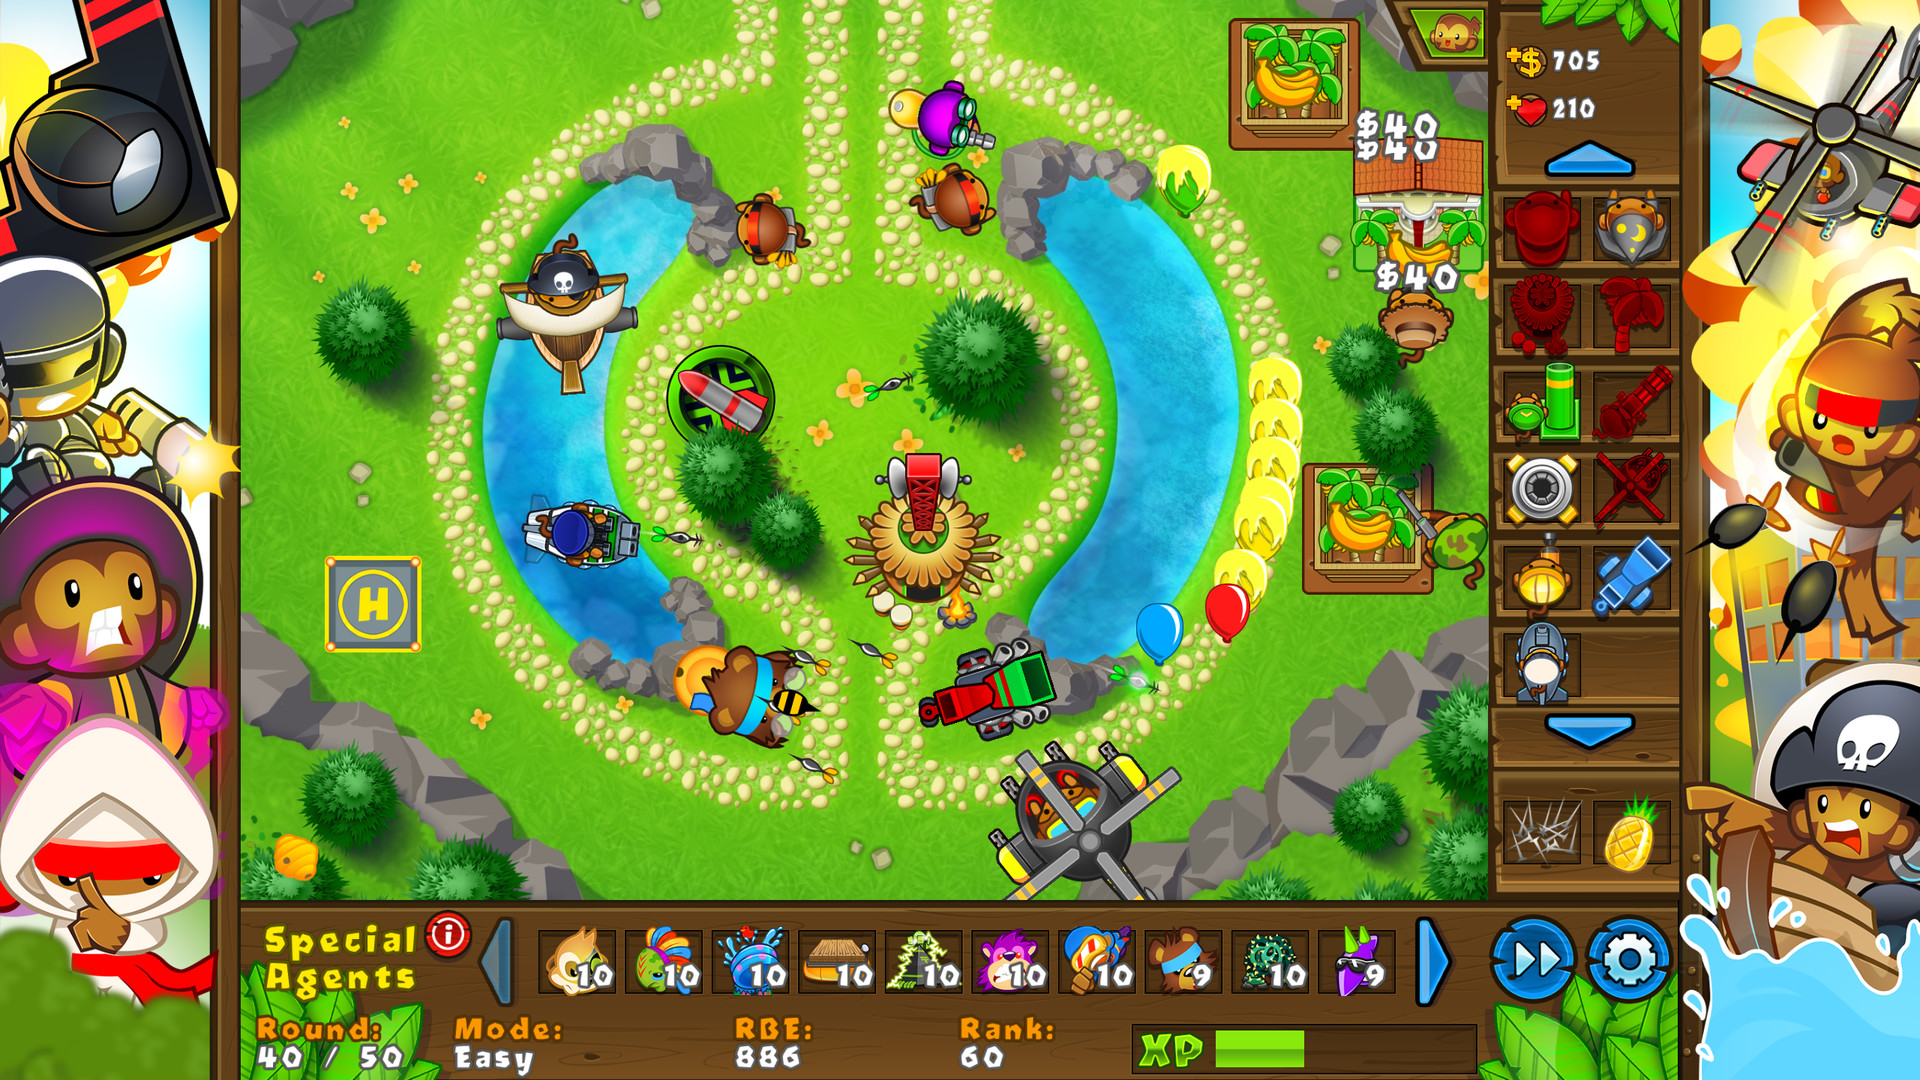 Bloons Defense 5